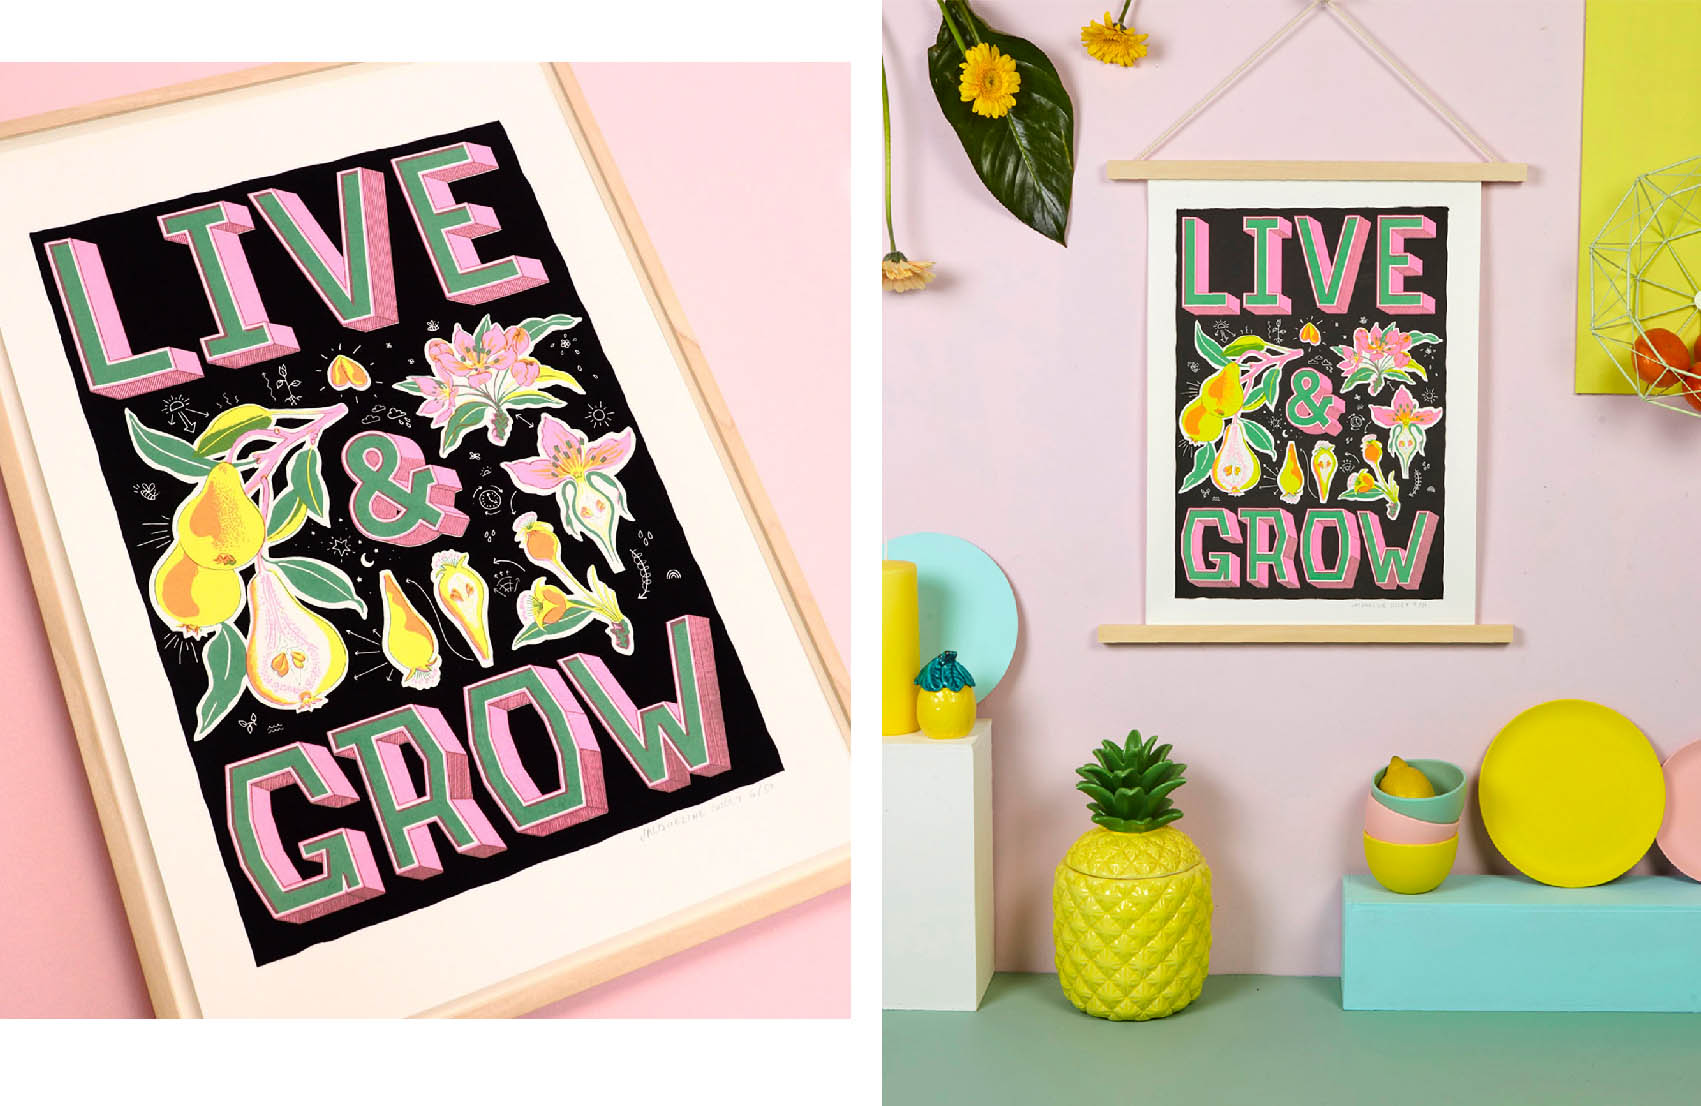 Live-And-Grow-teller-Silk-screen-print-Jacqueline-colley.jpg